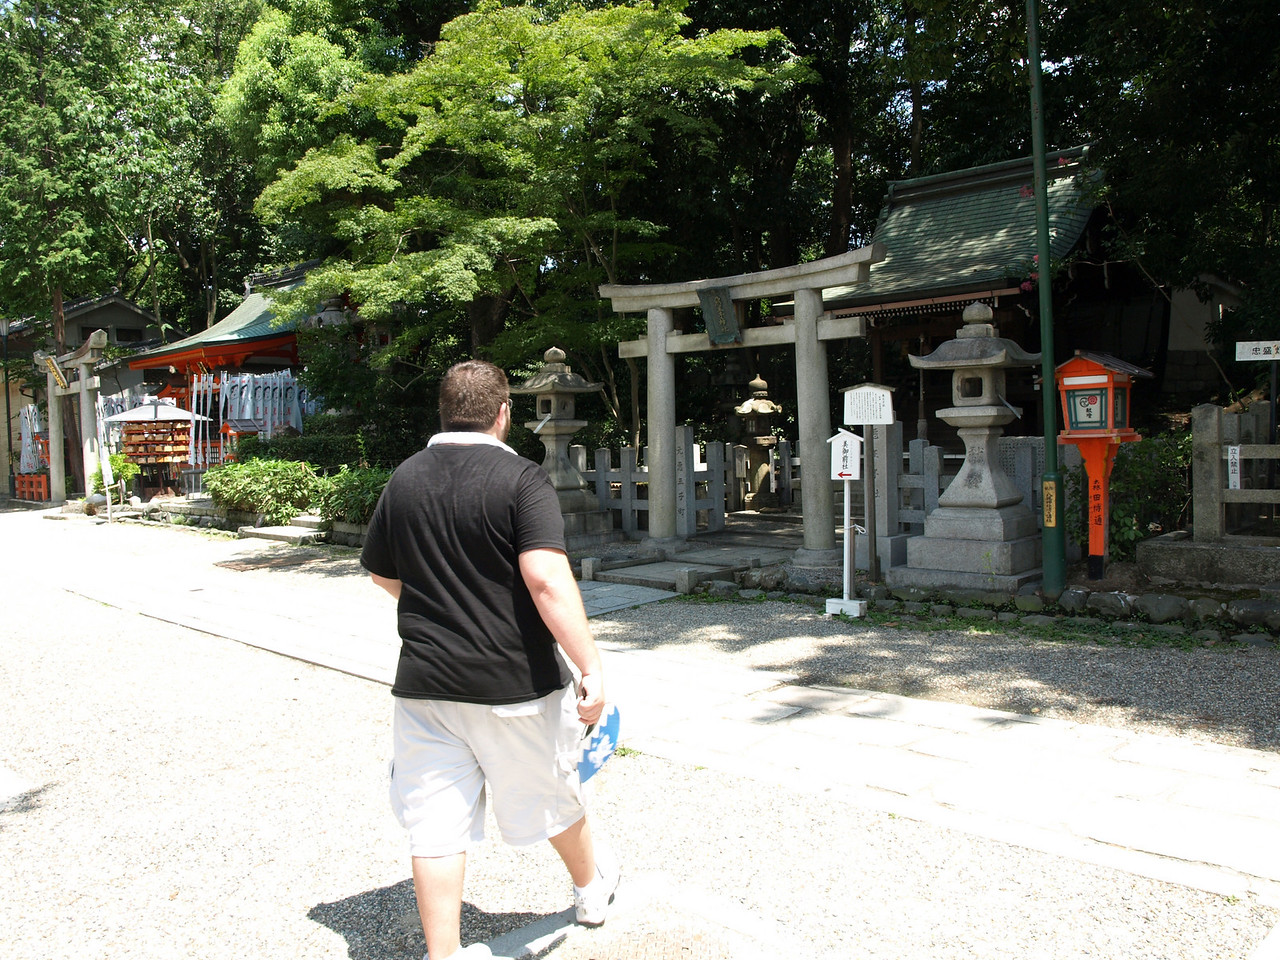 Here were many small shrines along the outer edge of the Yasaka Shrine, many with a small torii framing the entrance.